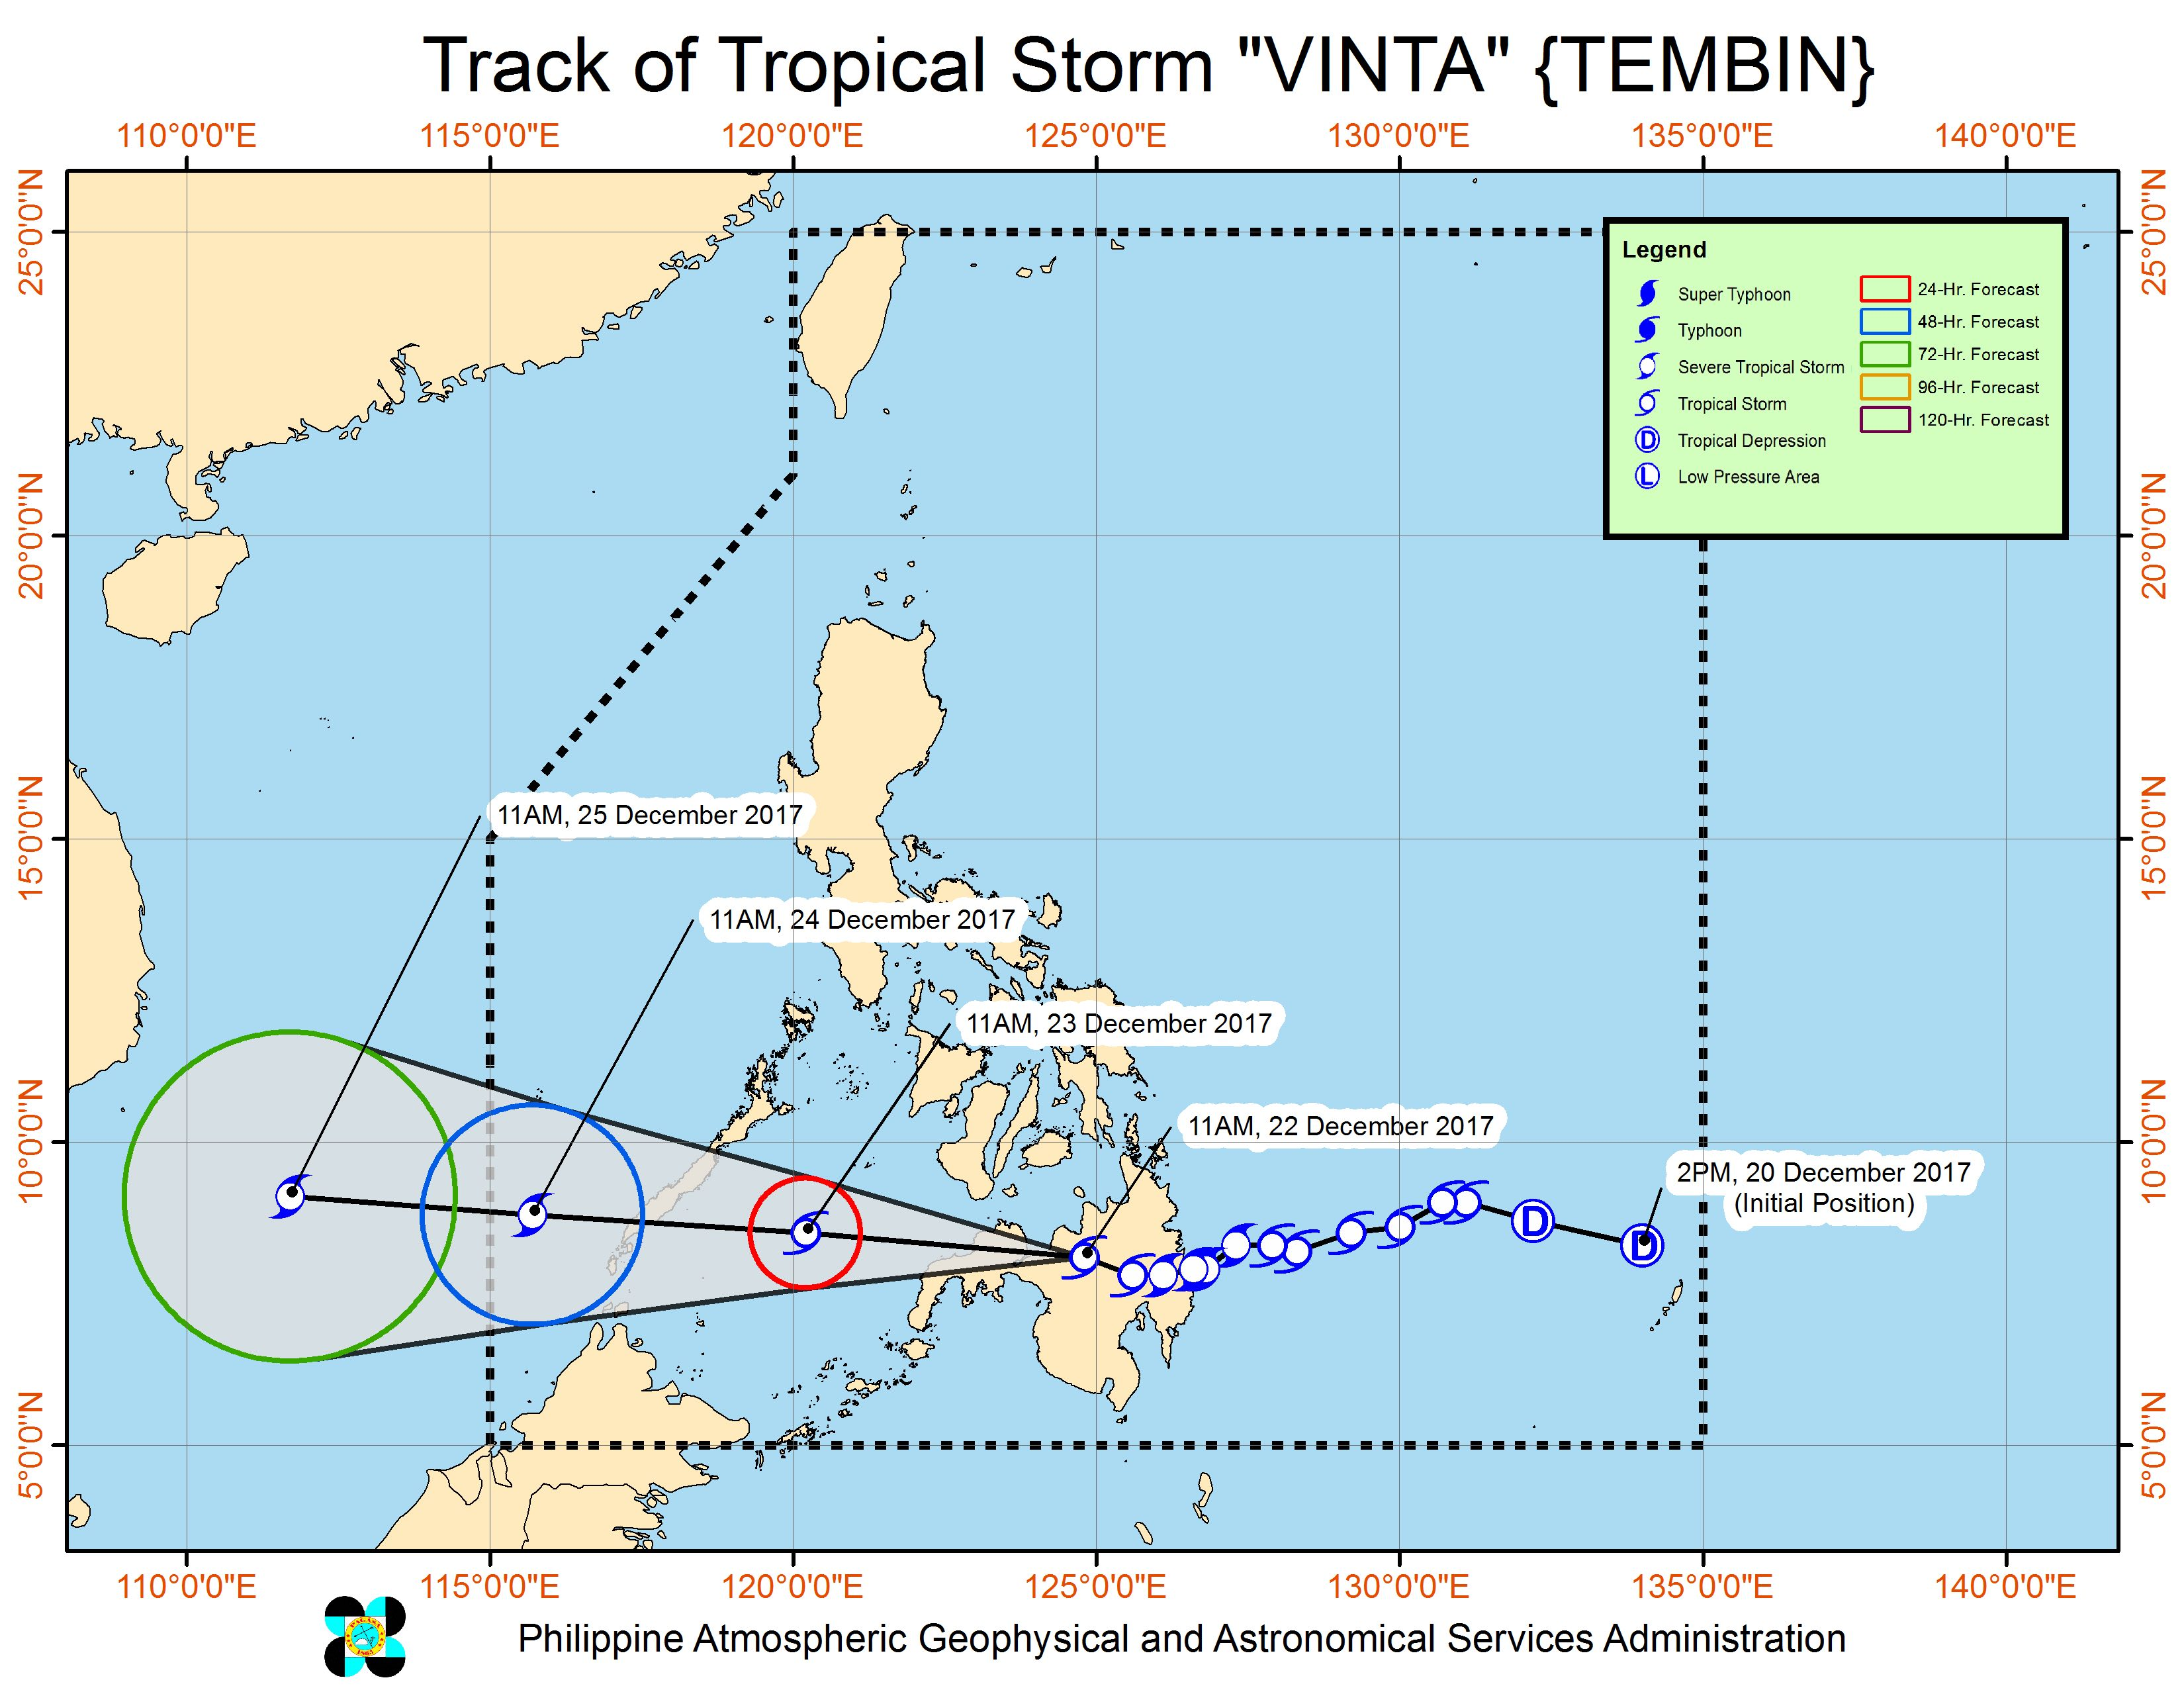 Forecast track of Tropical Storm Vinta as of December 22, 2 pm. Image courtesy of PAGASA